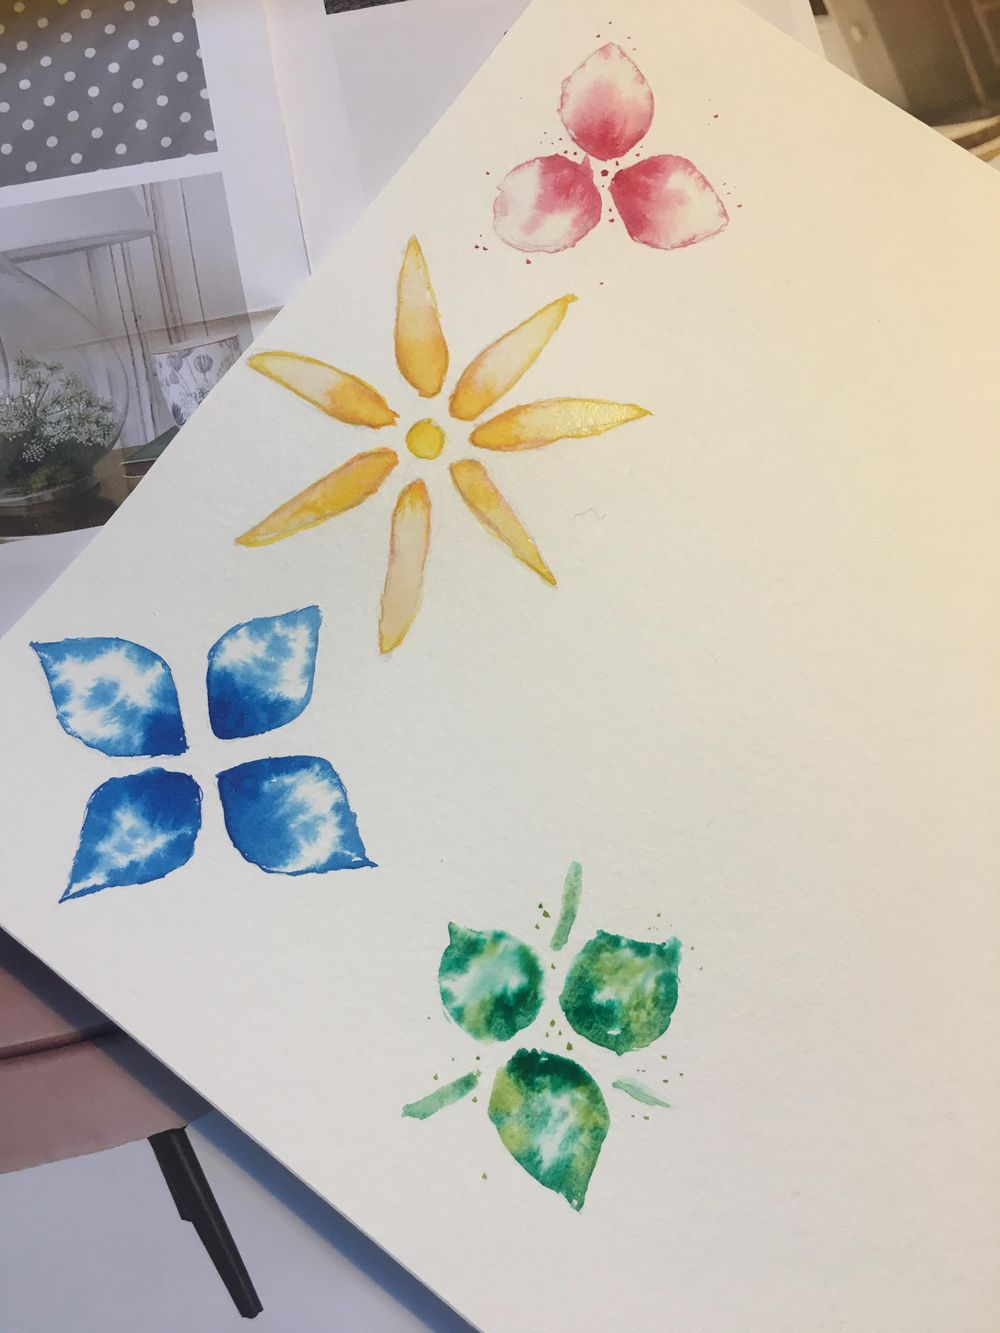 Watercolour rookie - image 2 - student project